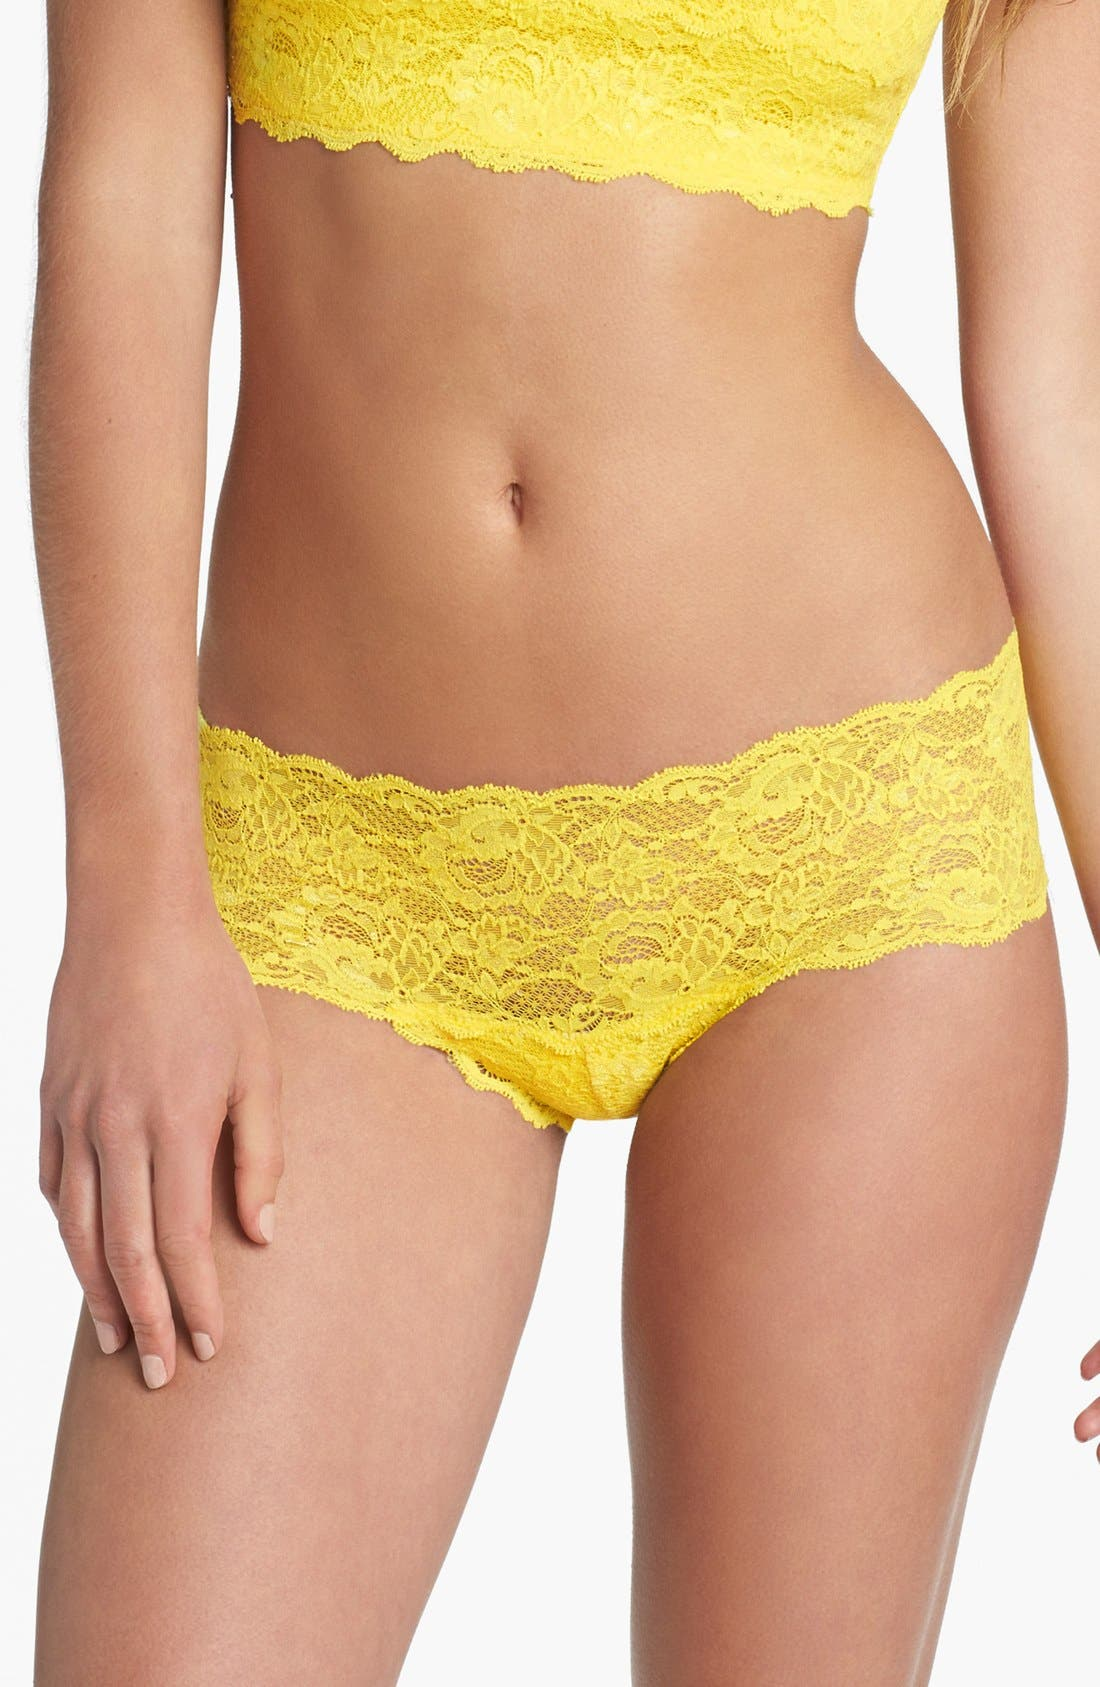 Alternate Image 1 Selected - Cosabella 'Never Say Never' Hipster Briefs